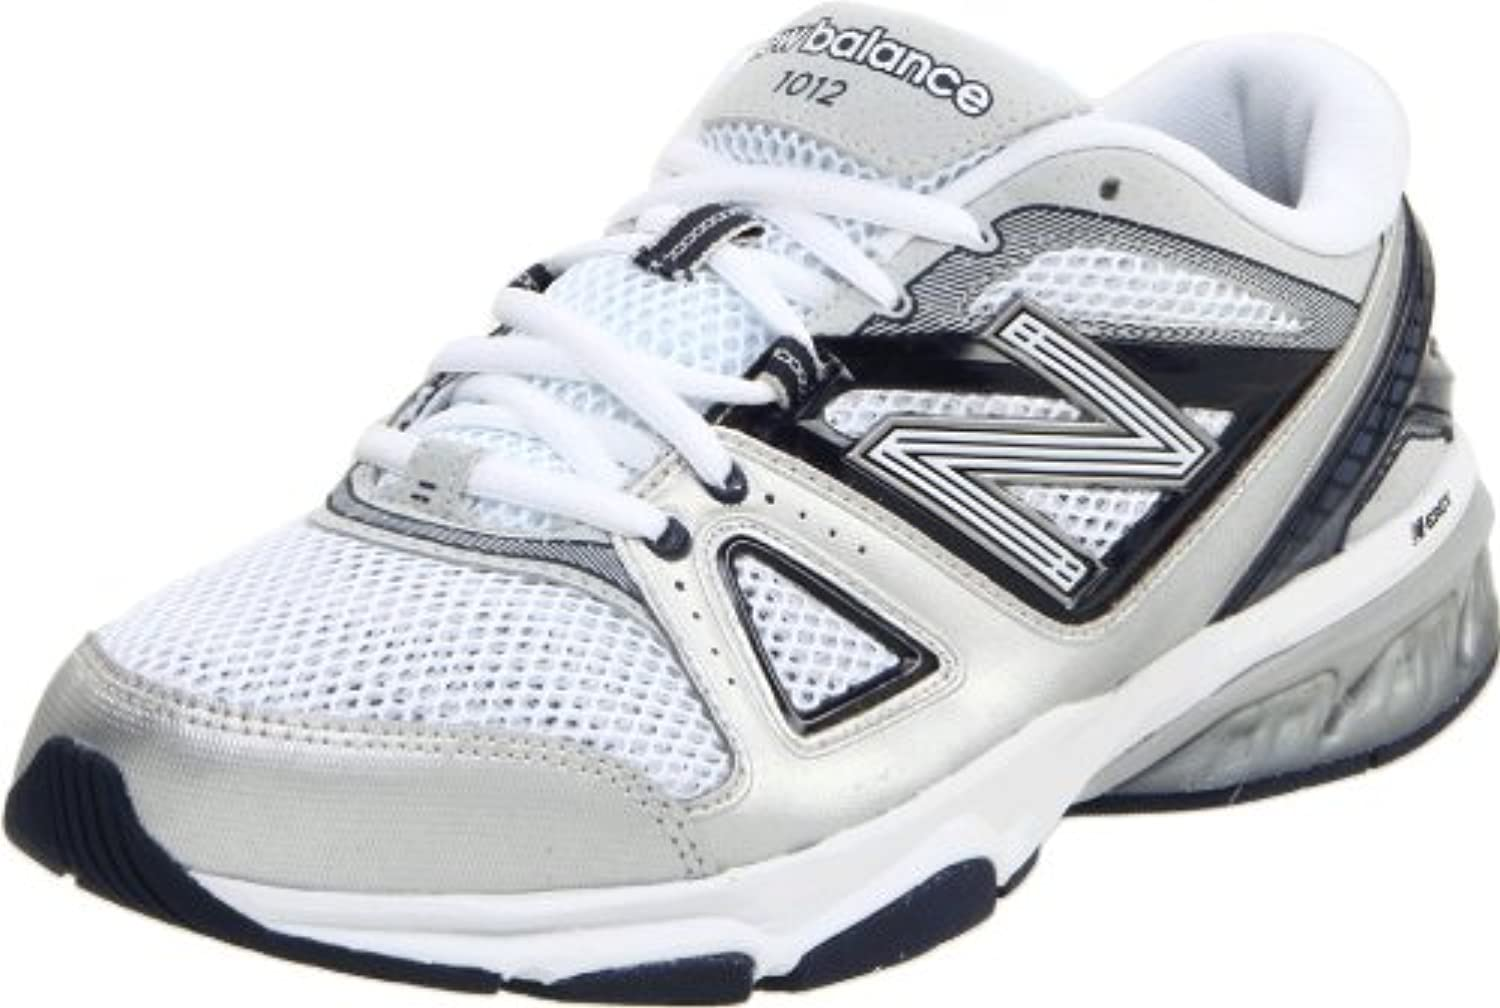 New Balance MX1012 Zapatillas De Cross-training (2E Width), color blanco, talla 40